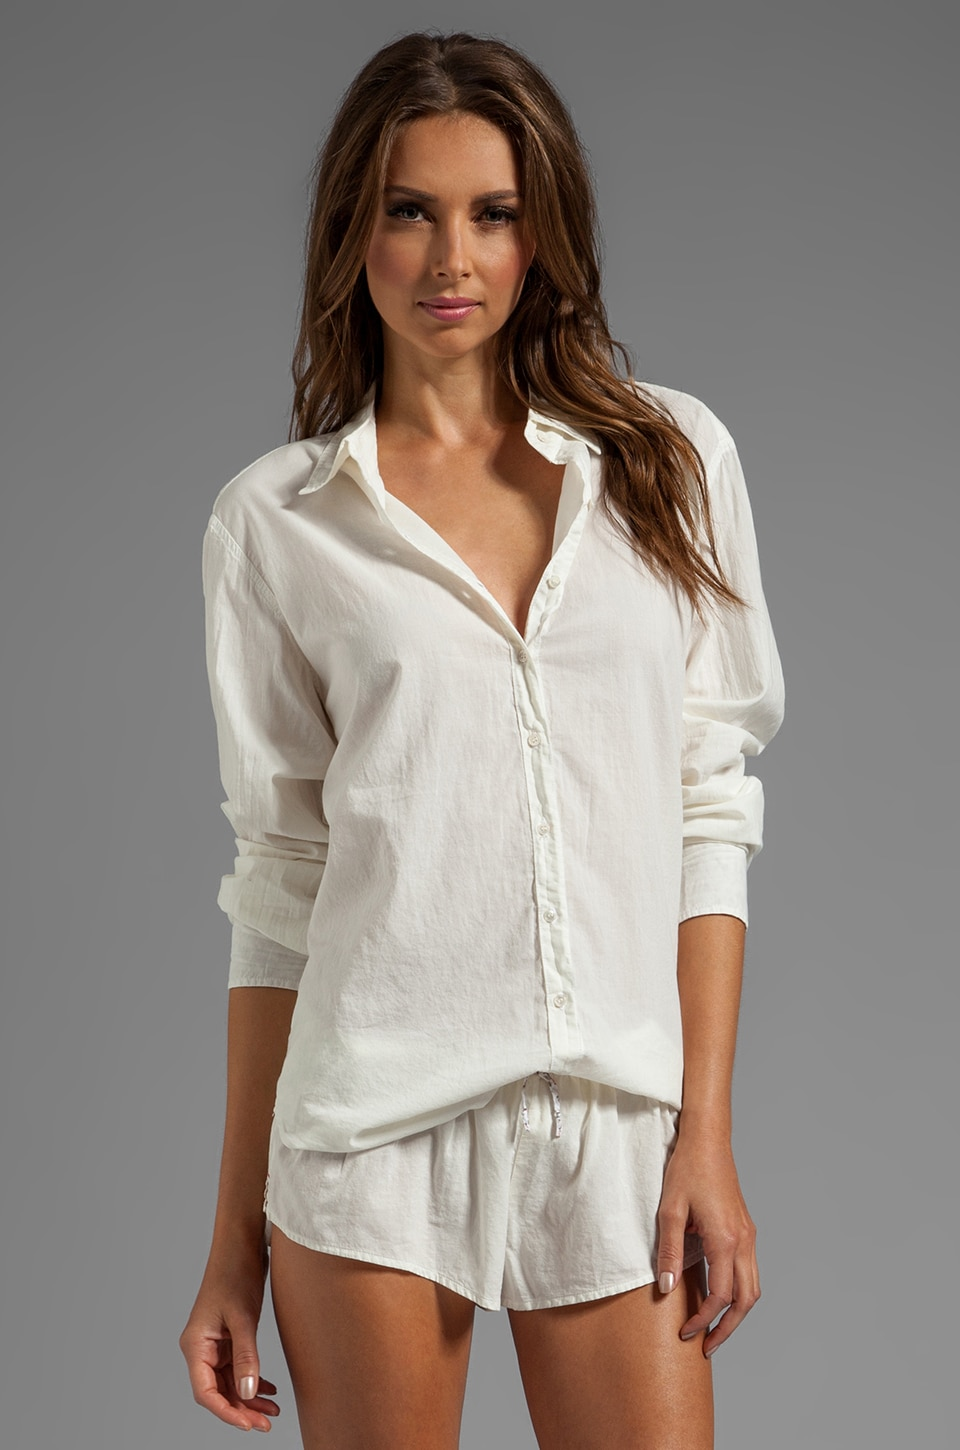 XiRENA Beau Button Up in Natural